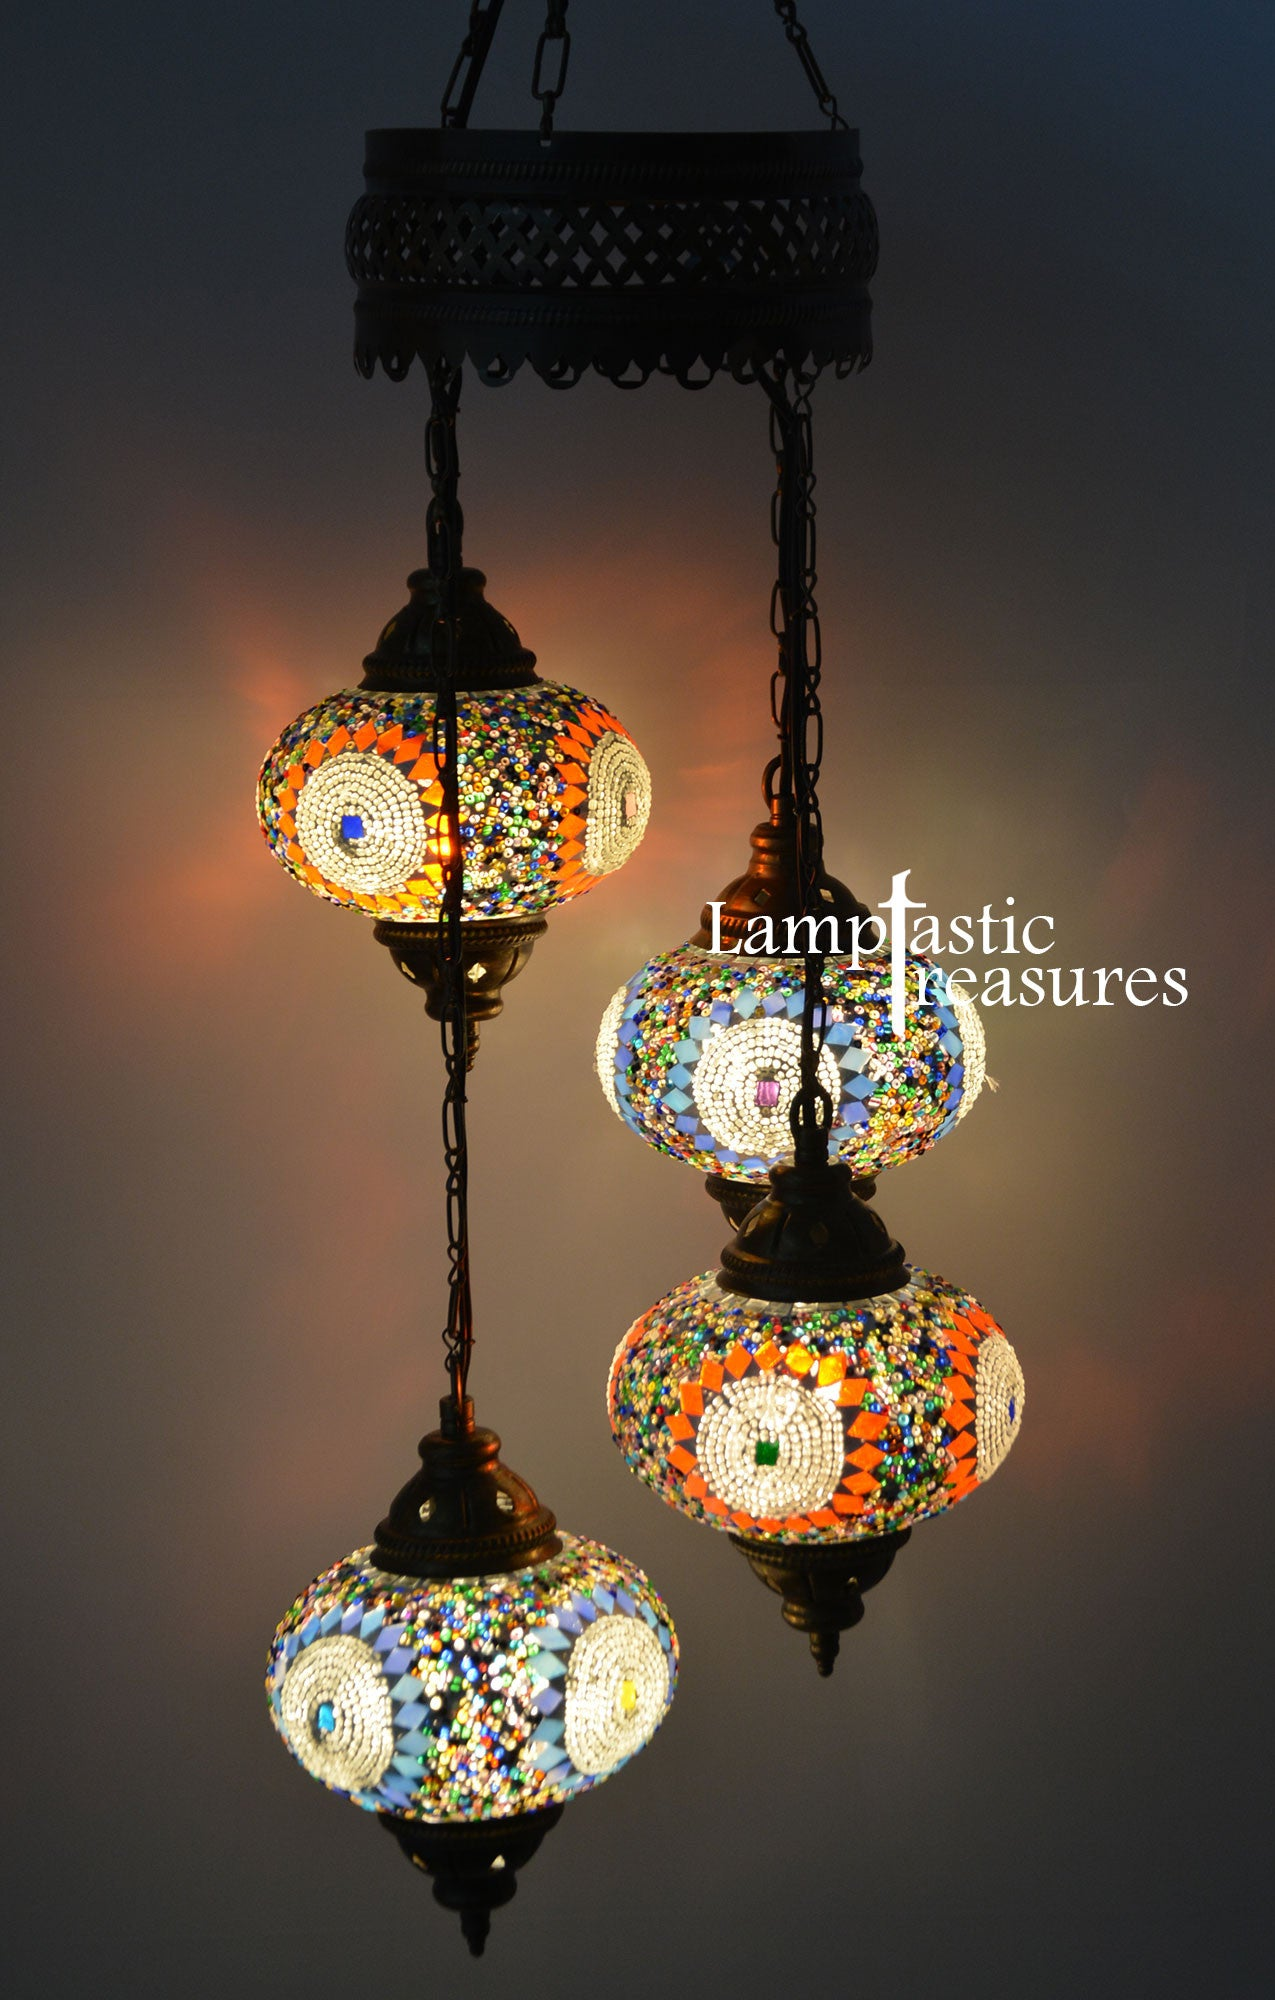 Turkish Mosaic 4 Globe Chandelier Lamp – Lamptastic